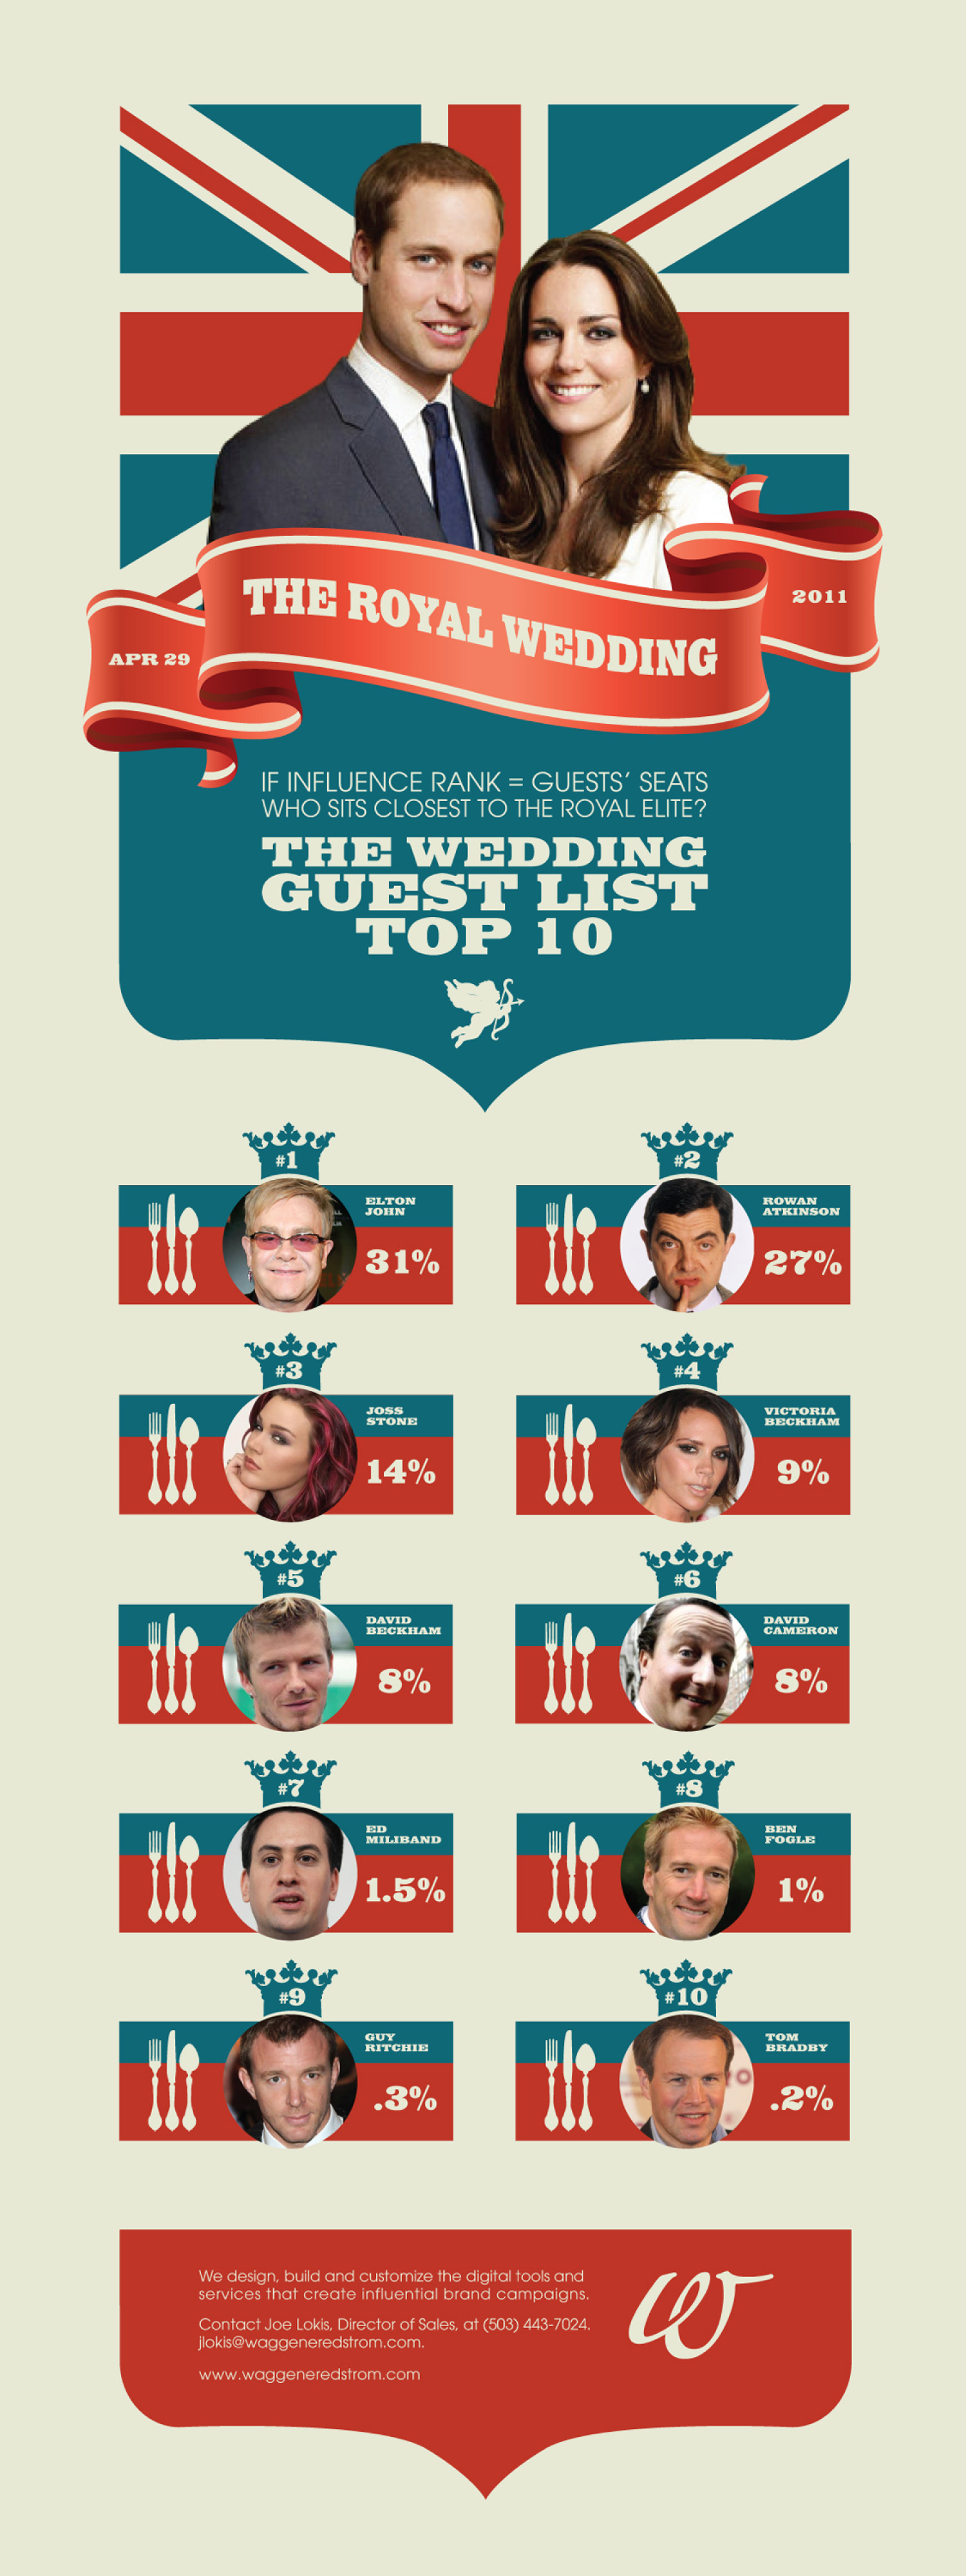 The Royal Wedding 2011 Infographic